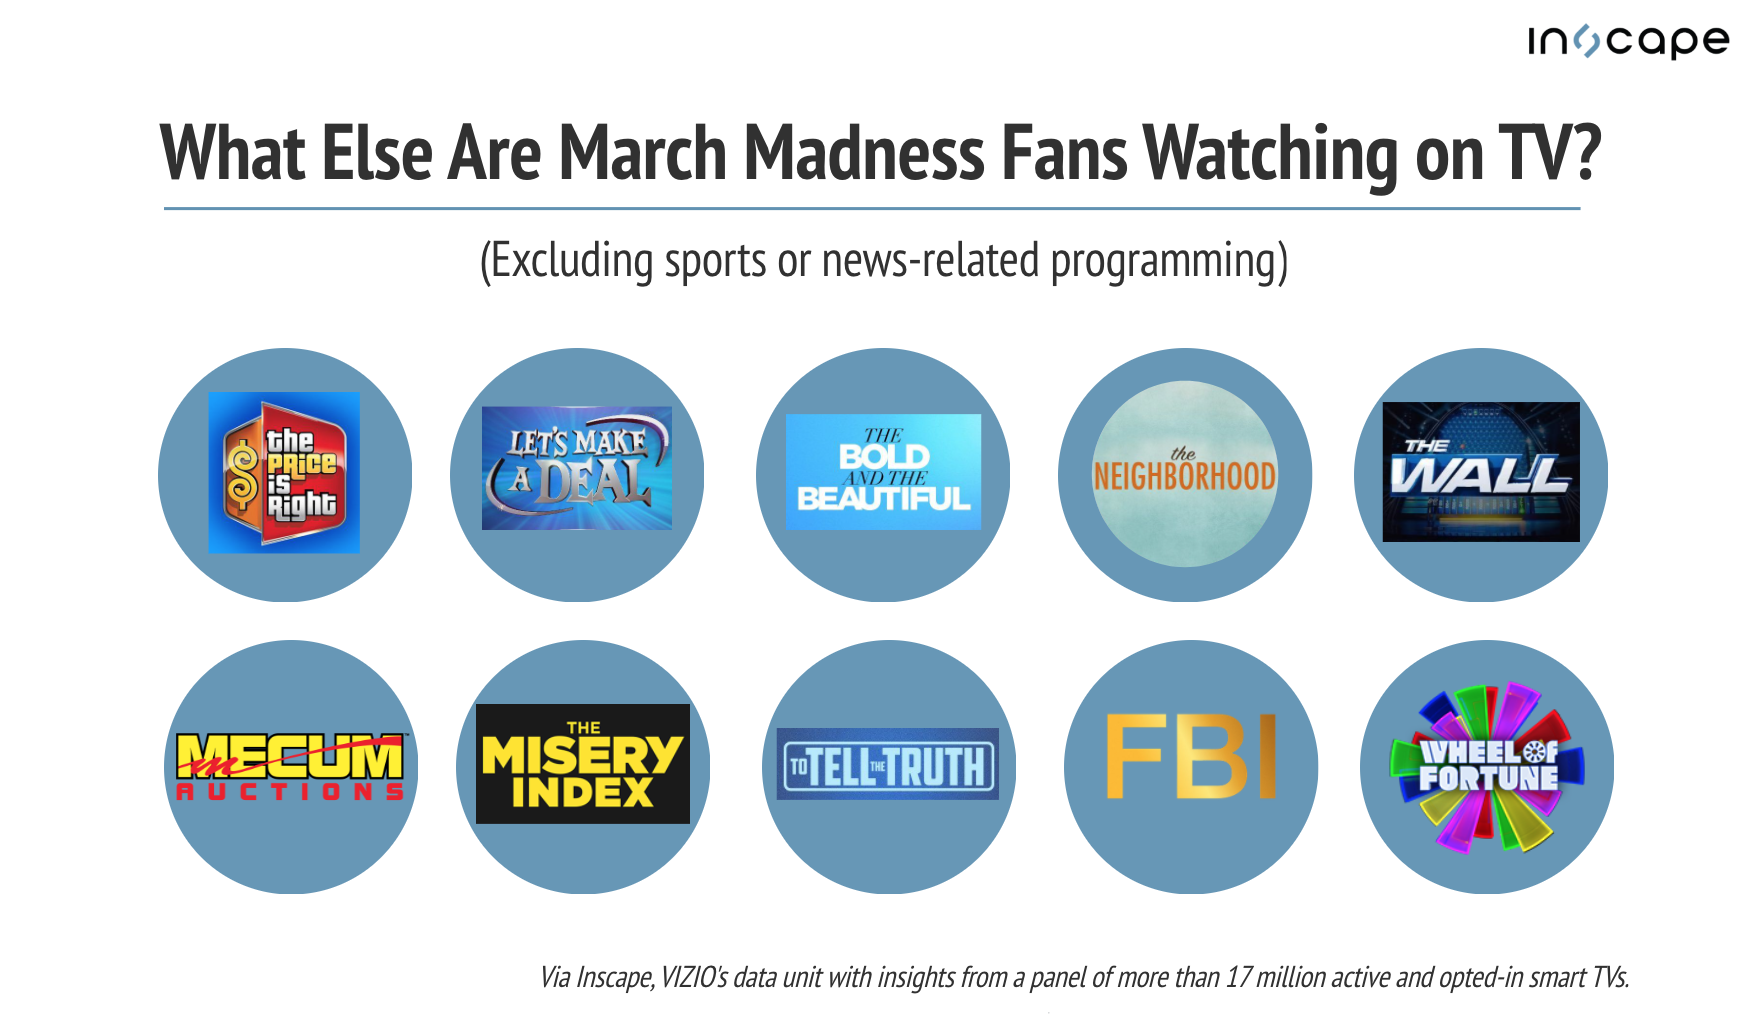 What else March Madness fans are watching